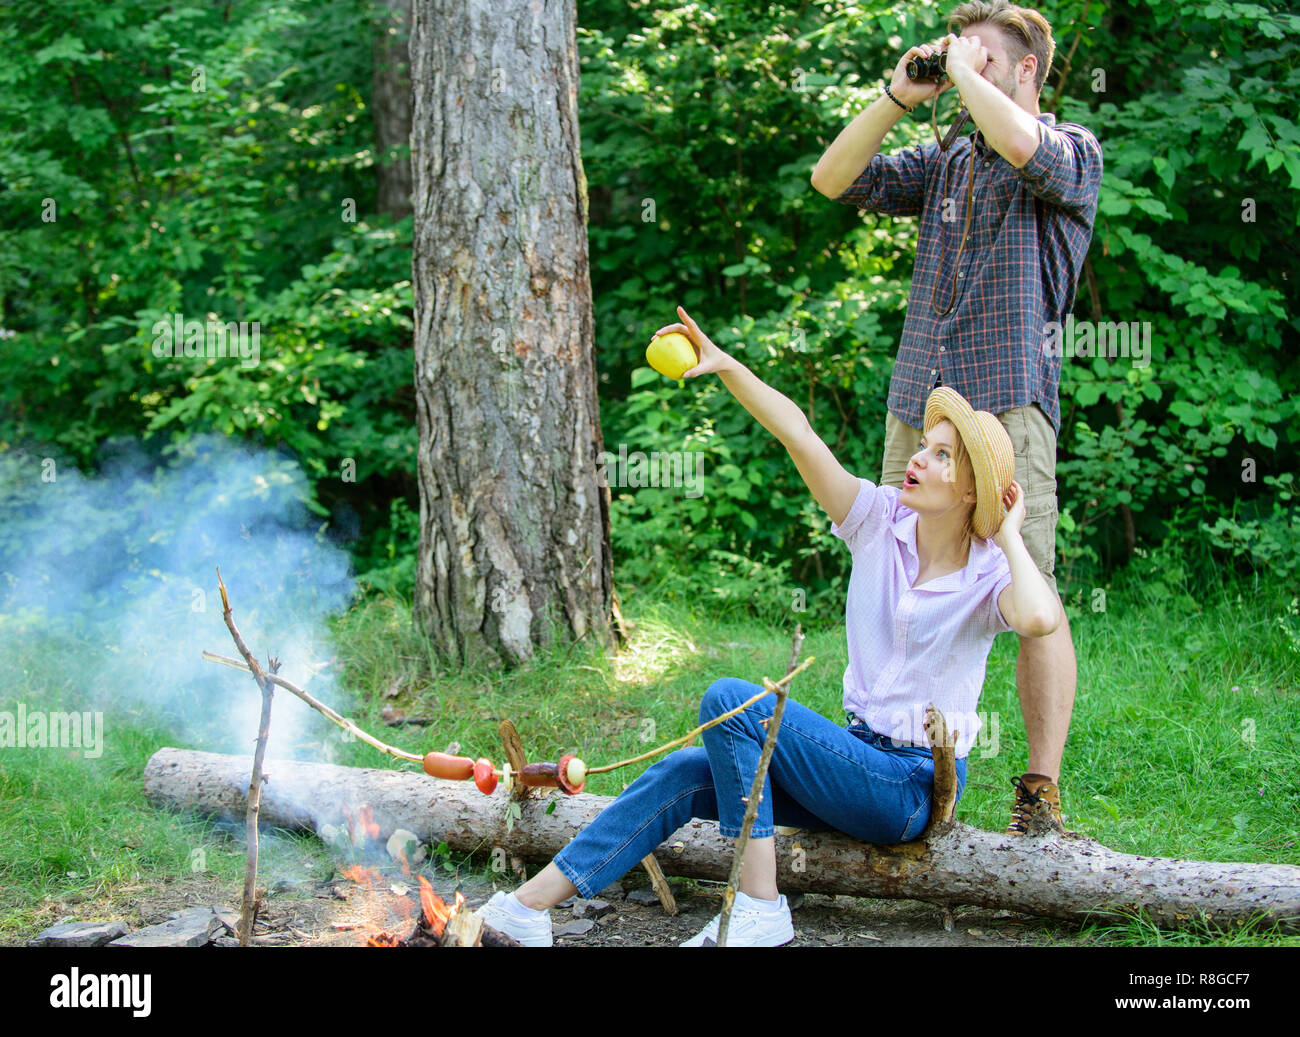 Couple enjoy hike in forest observing nature. Couple ornithologists expedition in forest. Observing nature concept. Ornithology interesting occupation. Woman and man looking binoculars near bonfire. - Stock Image